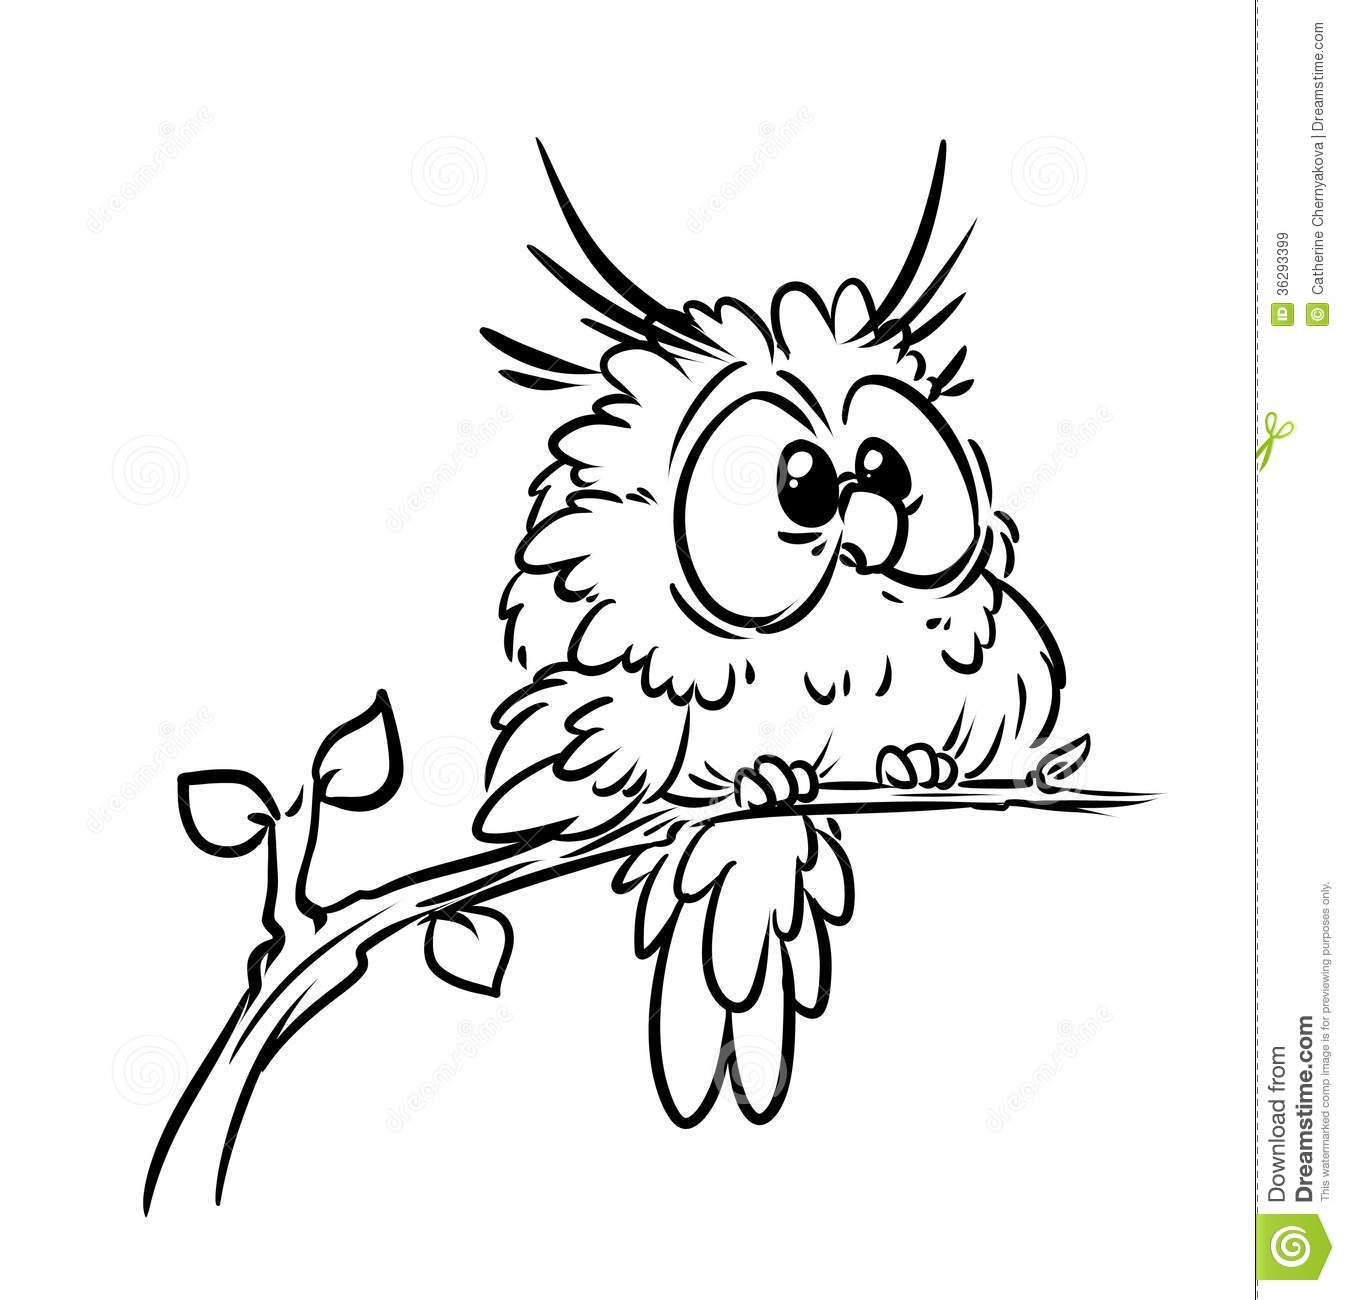 Bird Owl Coloring Pages - Download From Over 54 Million High Quality ...